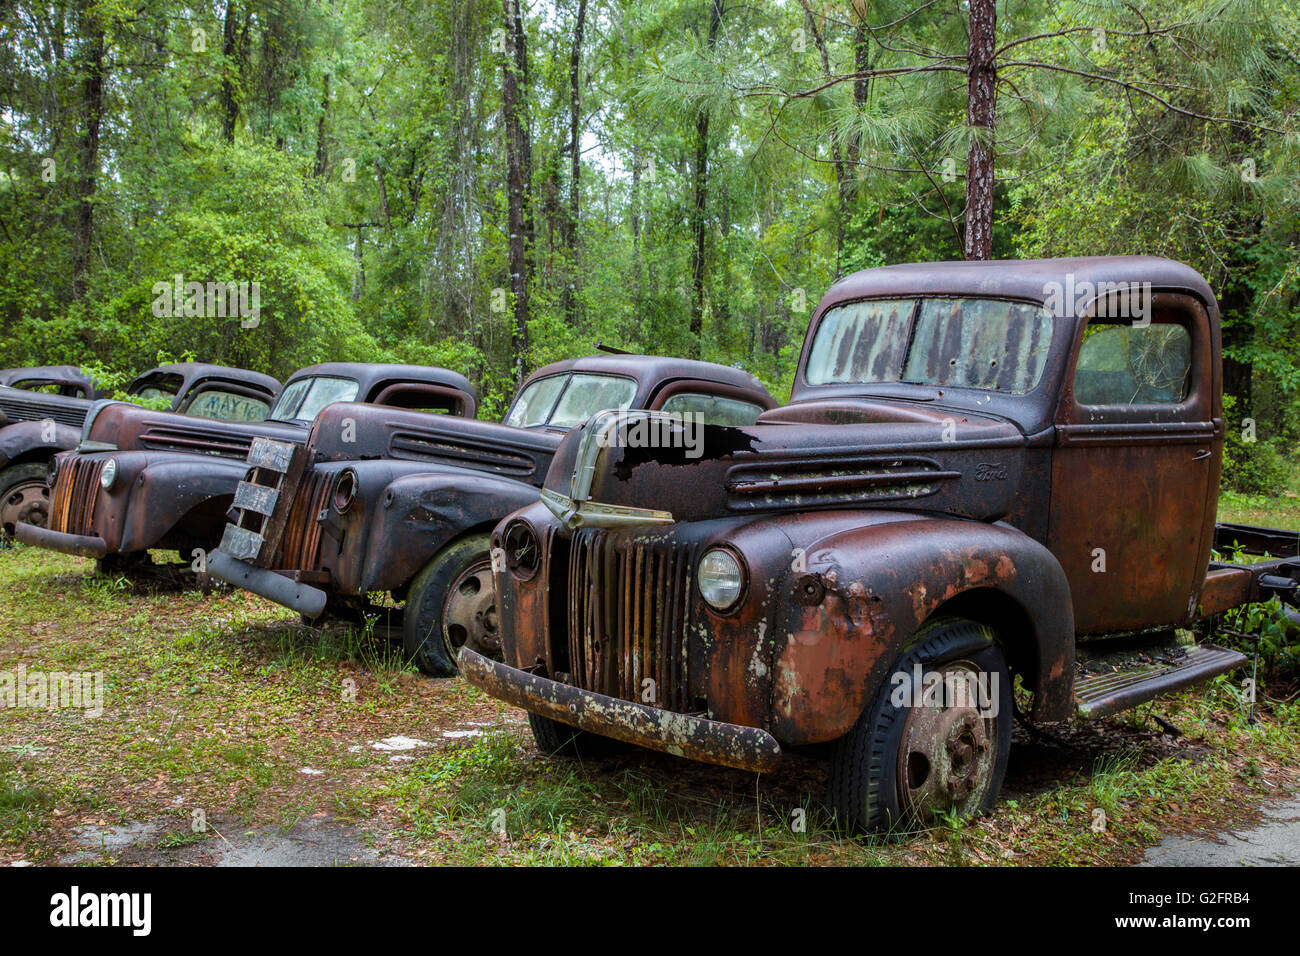 Old Cars For Sale Stock Photos Old Cars For Sale Stock: Old Rusted Abandoned Cars And Trucks In Crawfordville